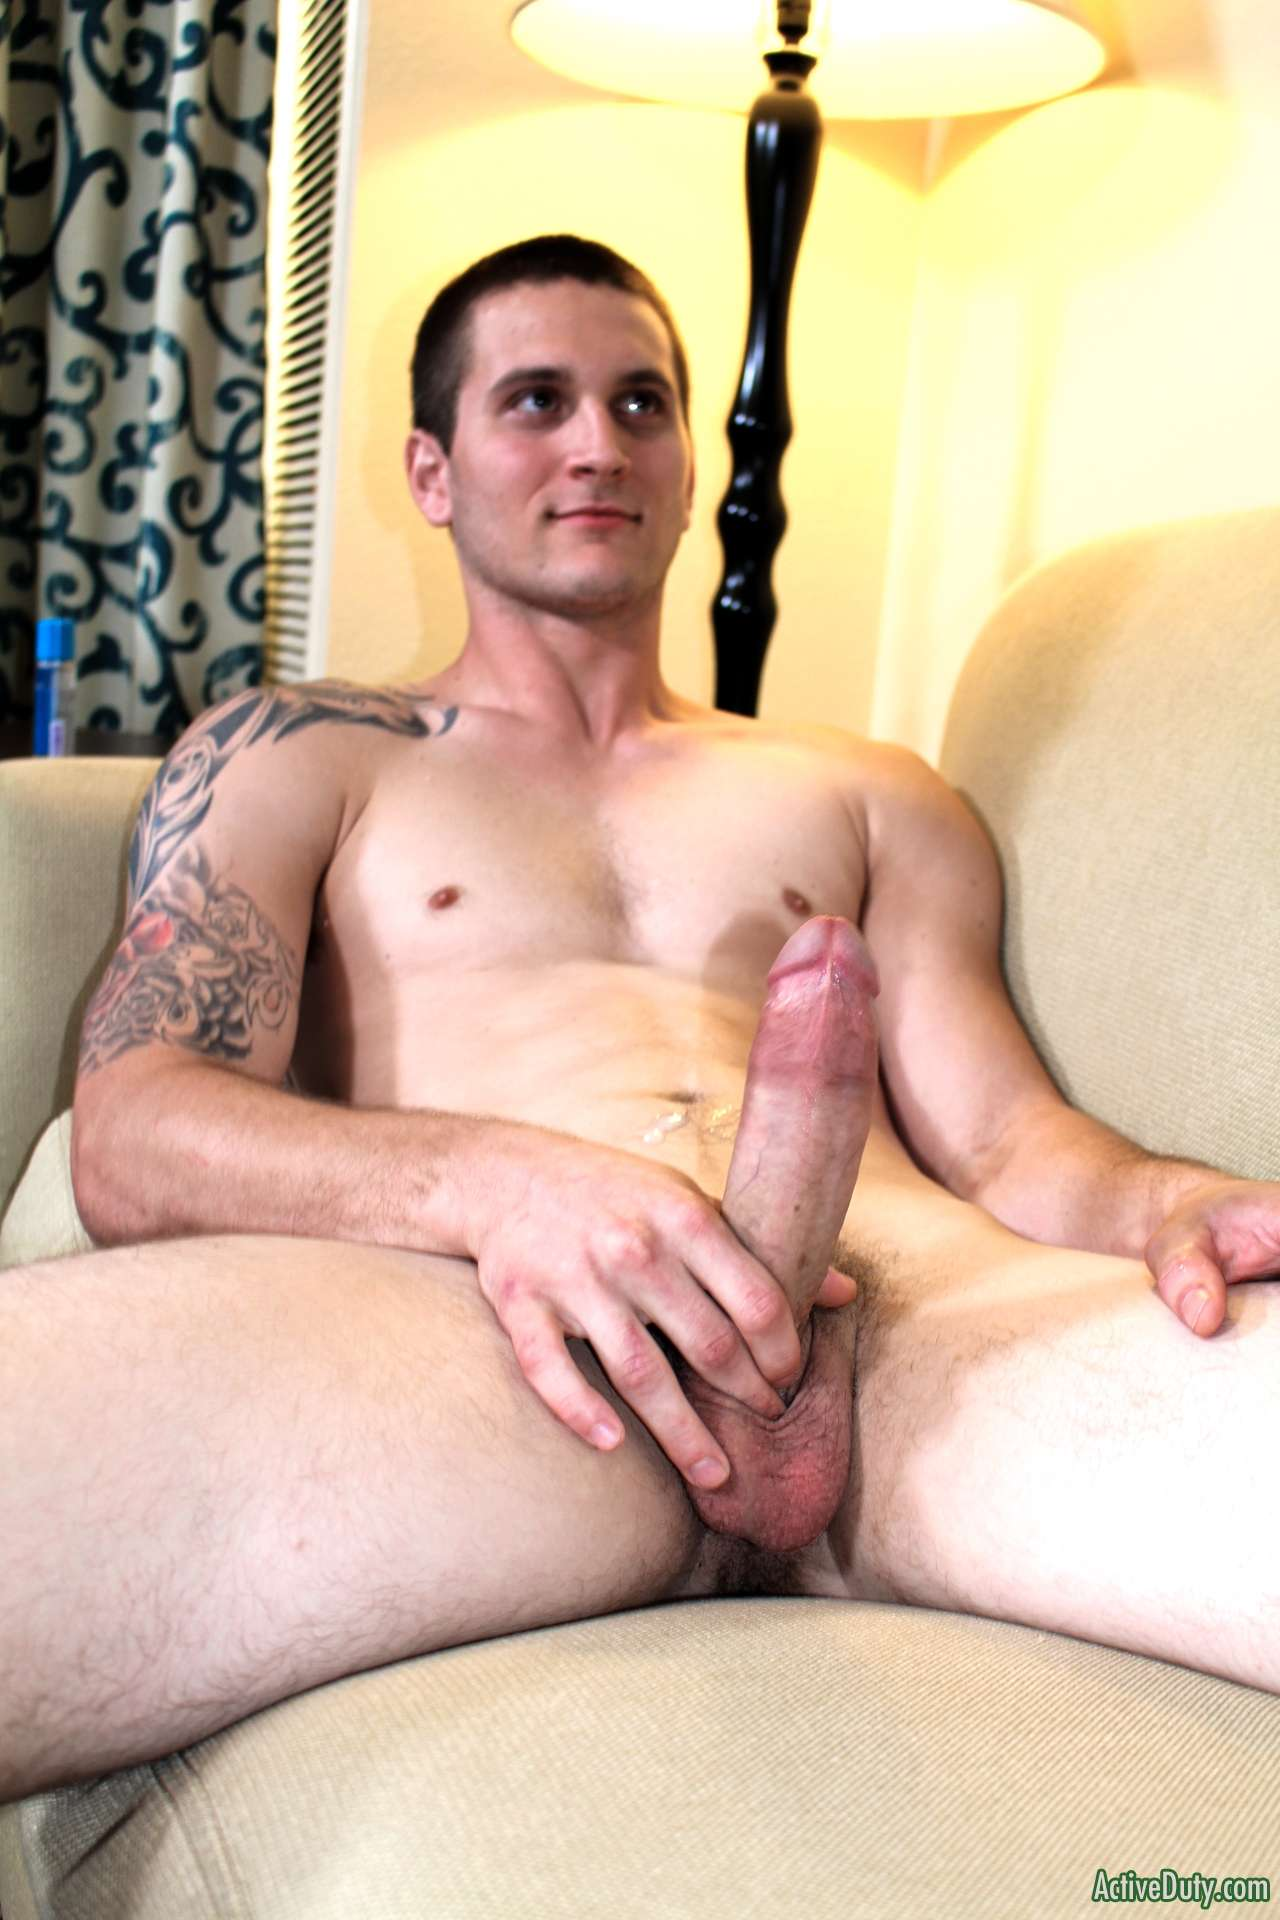 horny guy showing off his big uncut cock